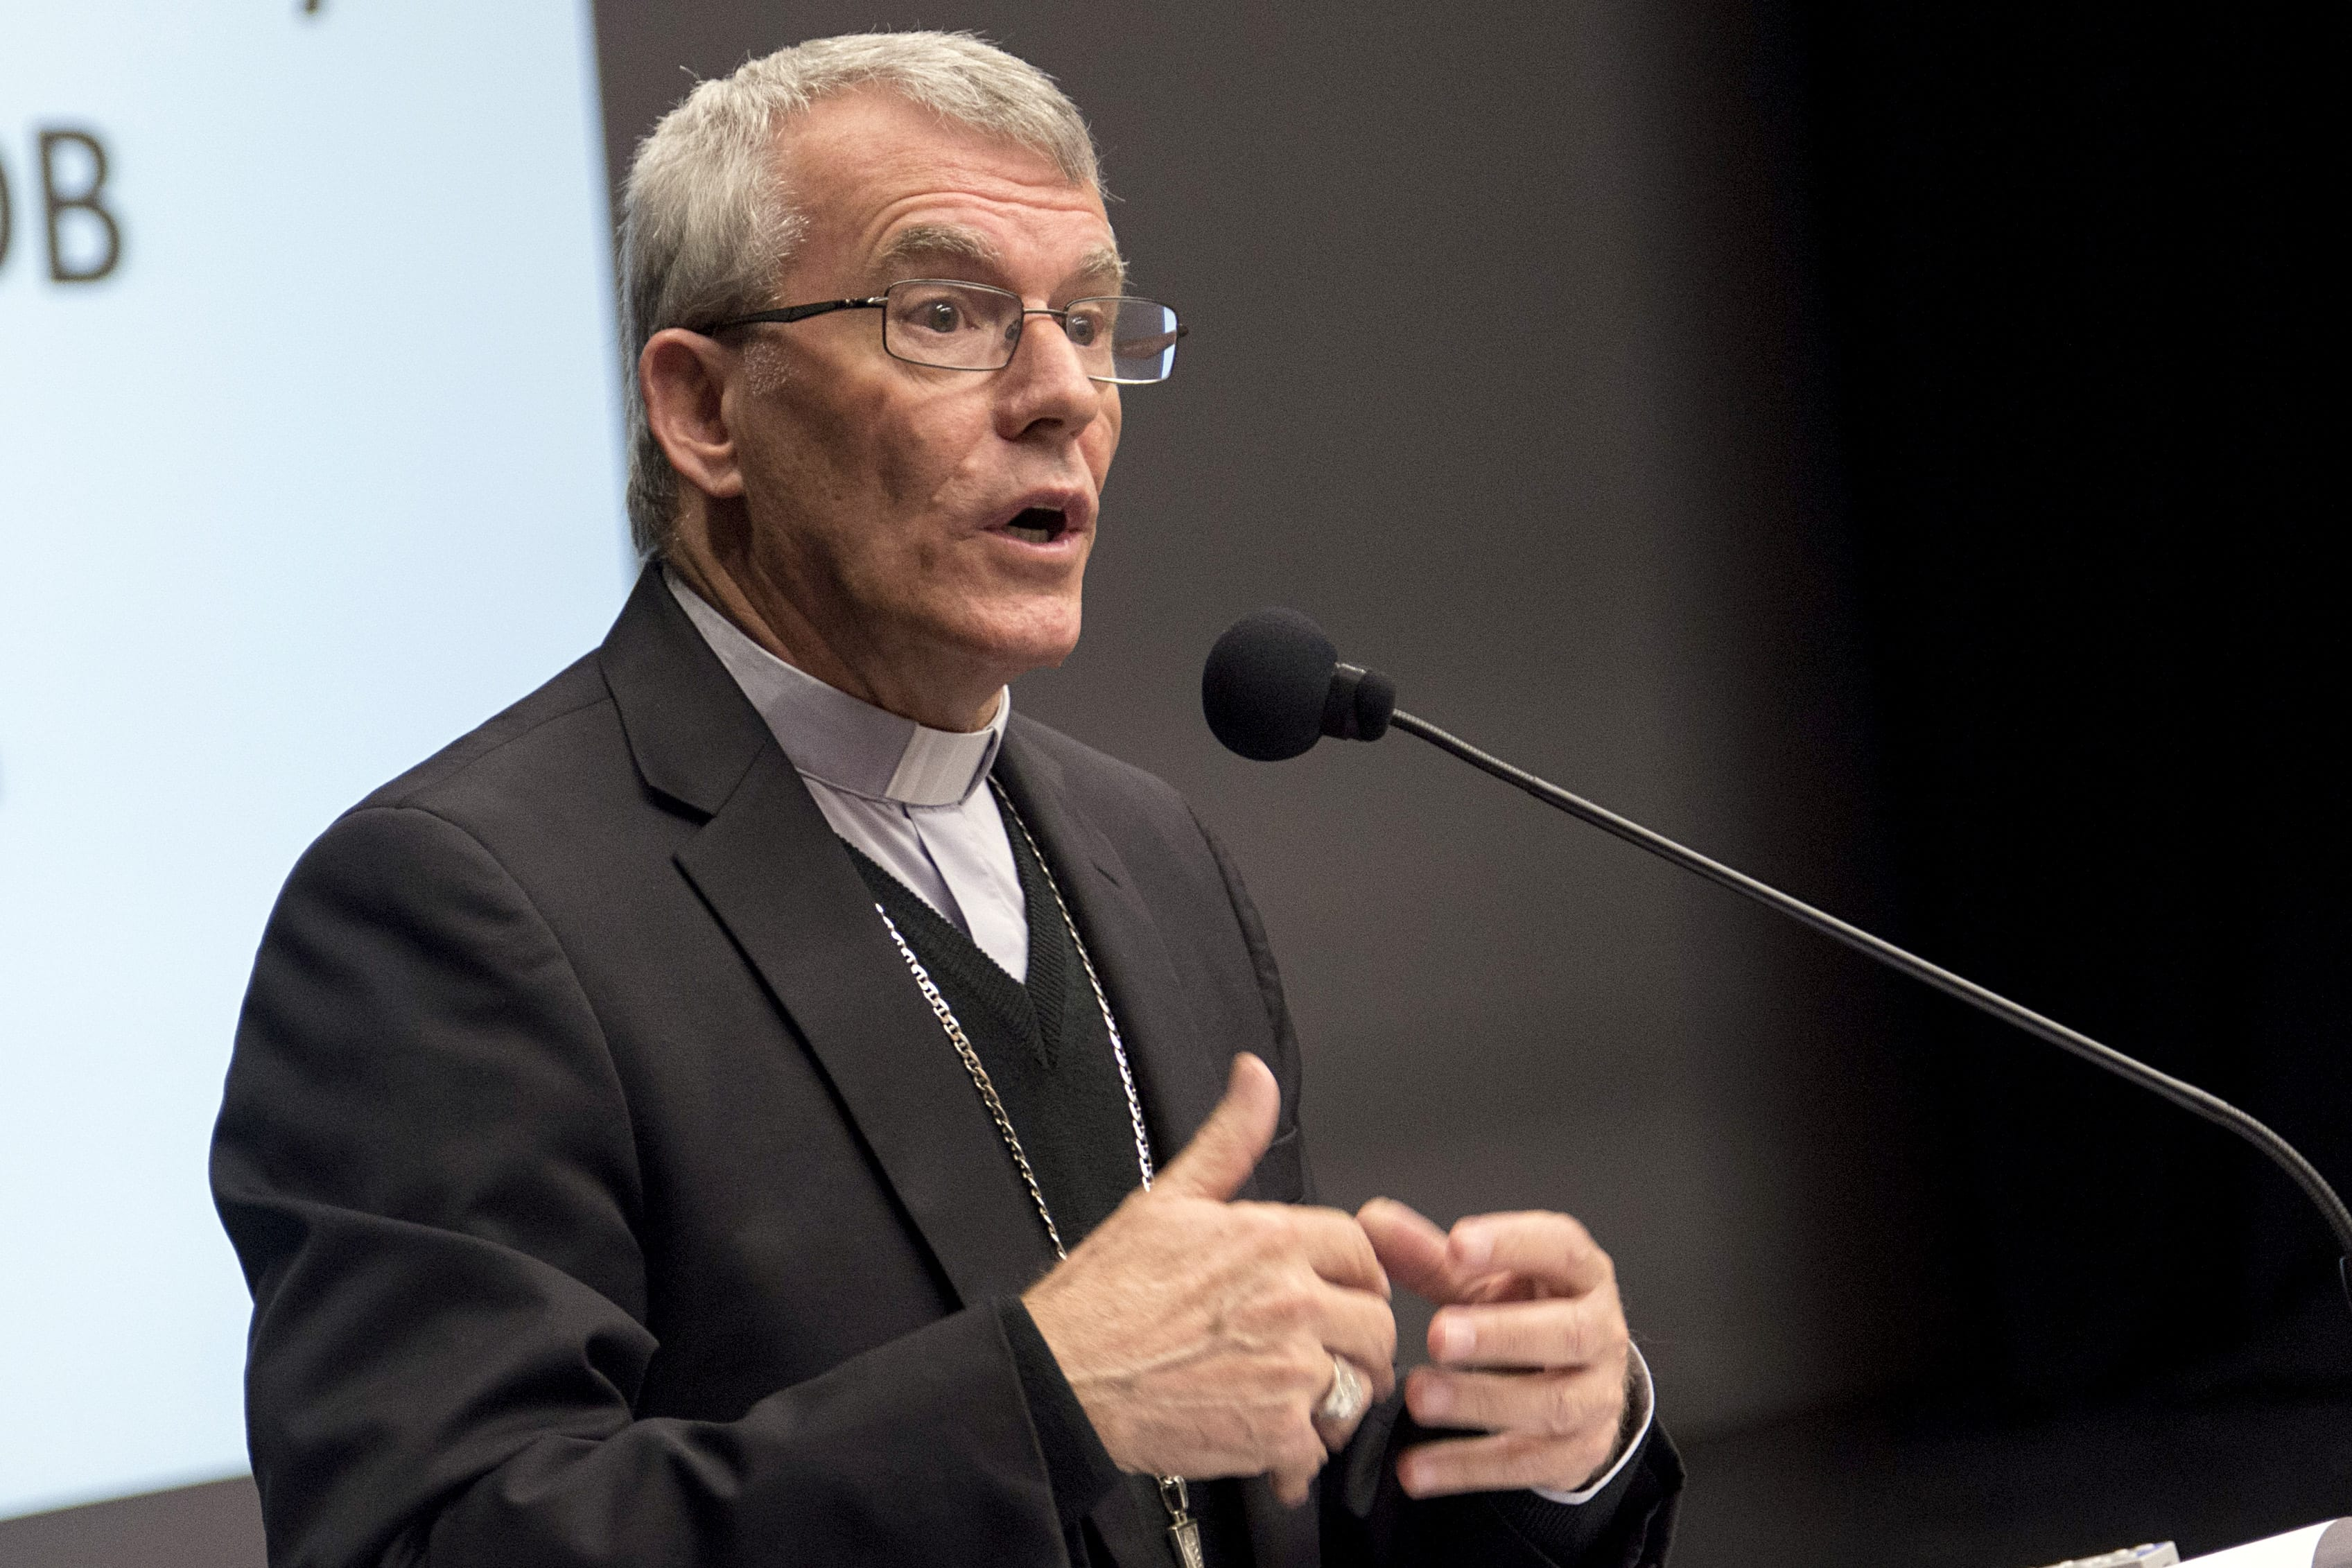 Archbishop Costelloe said the hope for the Year of Youth is to come together to walk and engage with more young people across all areas of the Church. Photo: Josh Low.